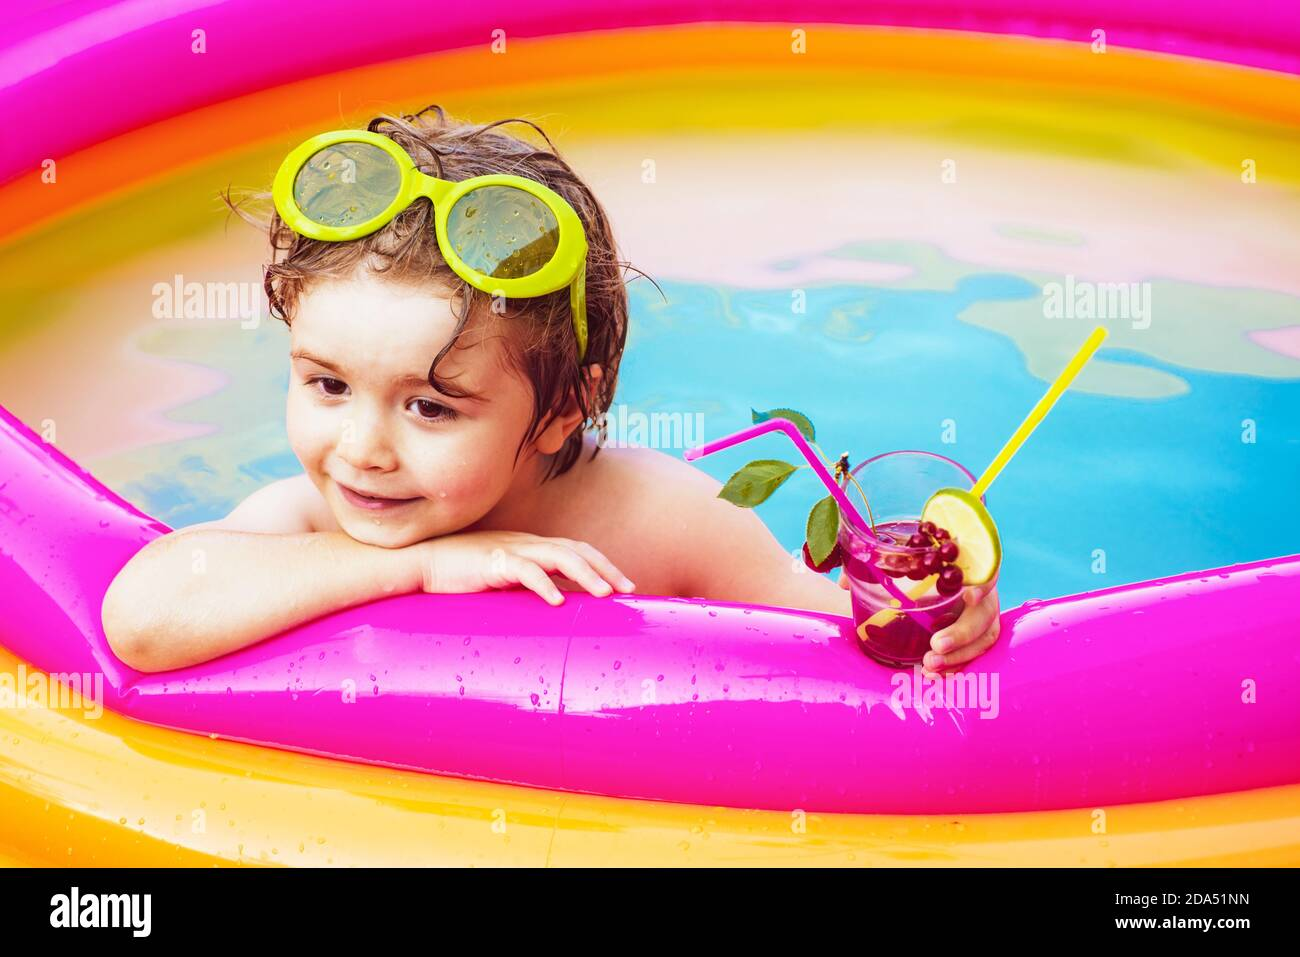 Little child boy having fun in the pool. Cute kid relaxing on swimming pool. Children playing in pool. Child water toys. Cocktails drinks. Stock Photo